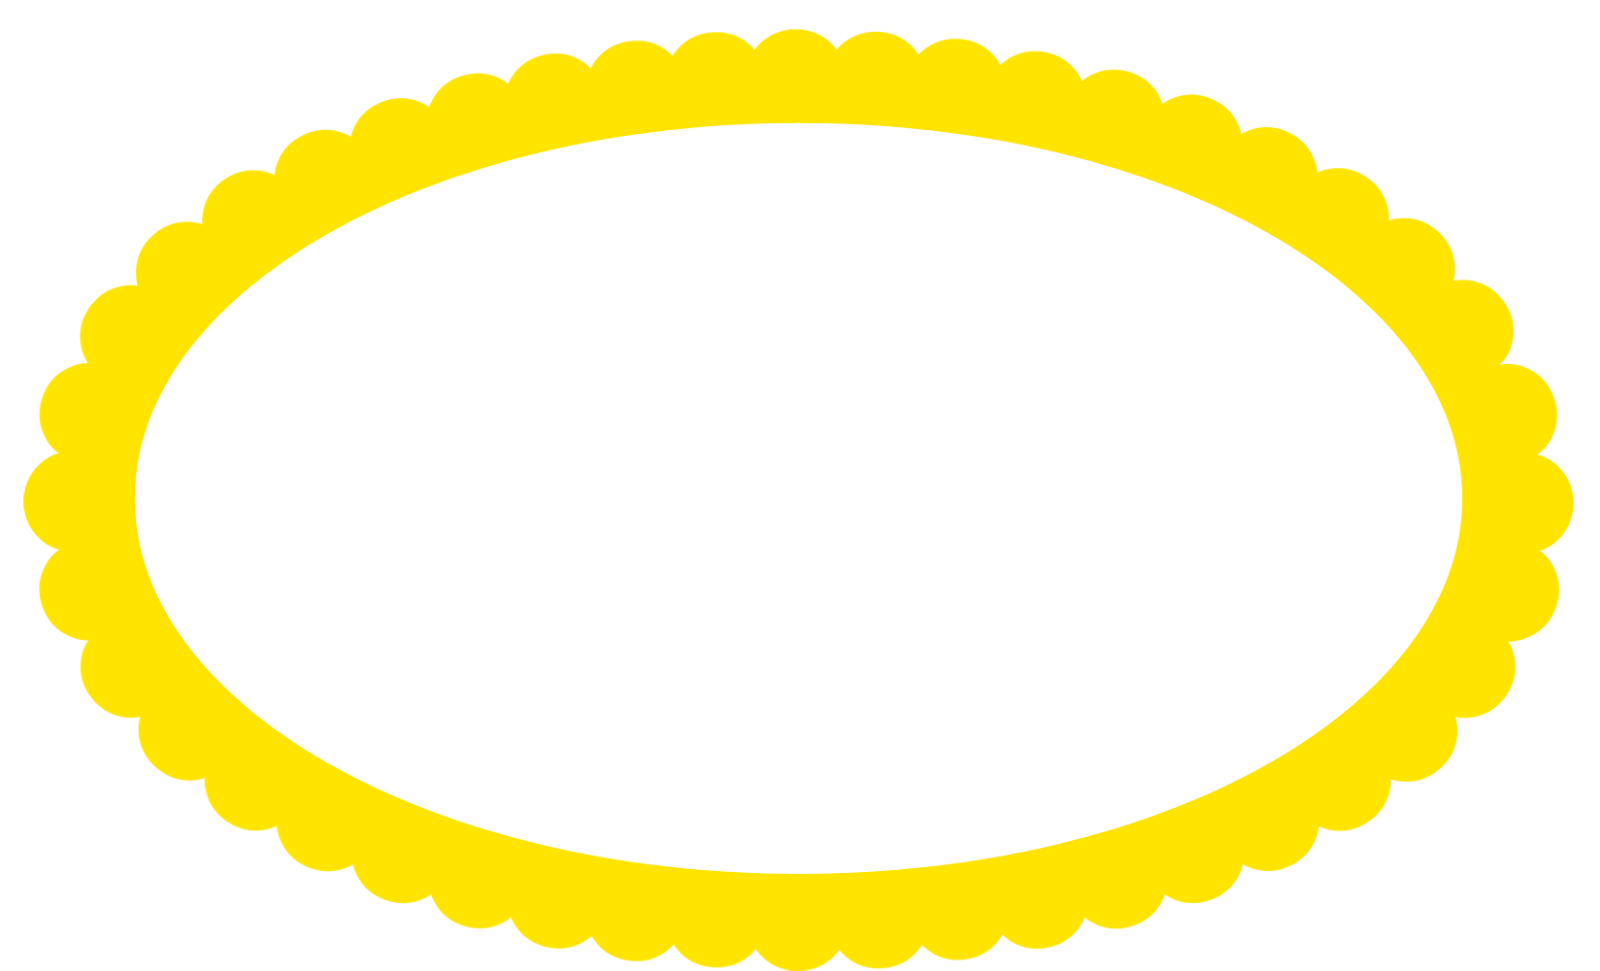 Frame amarelo clipart clipart royalty free download Frame amarelo png clipart images gallery for free download   MyReal ... clipart royalty free download